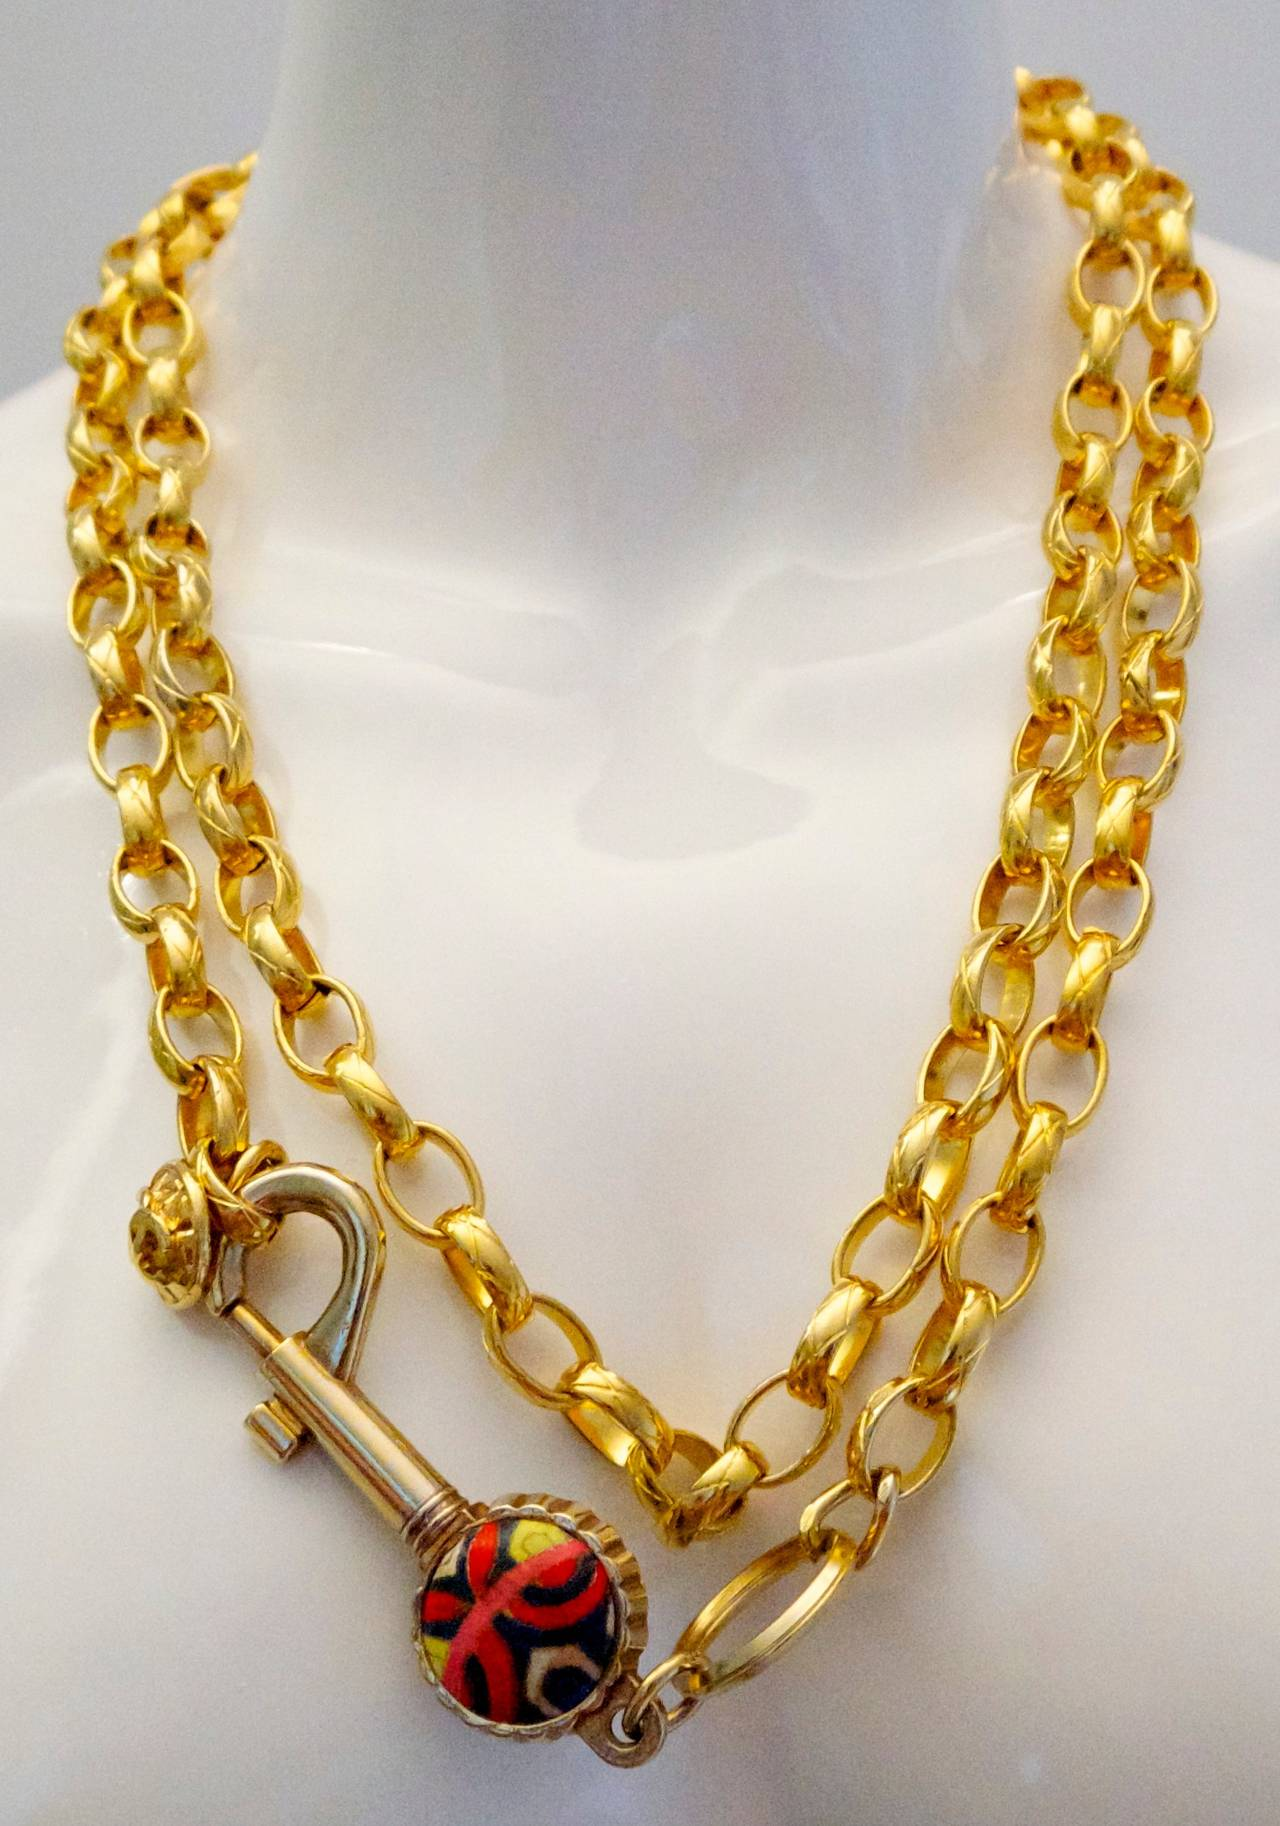 Women's Vintage Chanel Gold Tone Belt / Necklace - Lock and Key - Rare For Sale